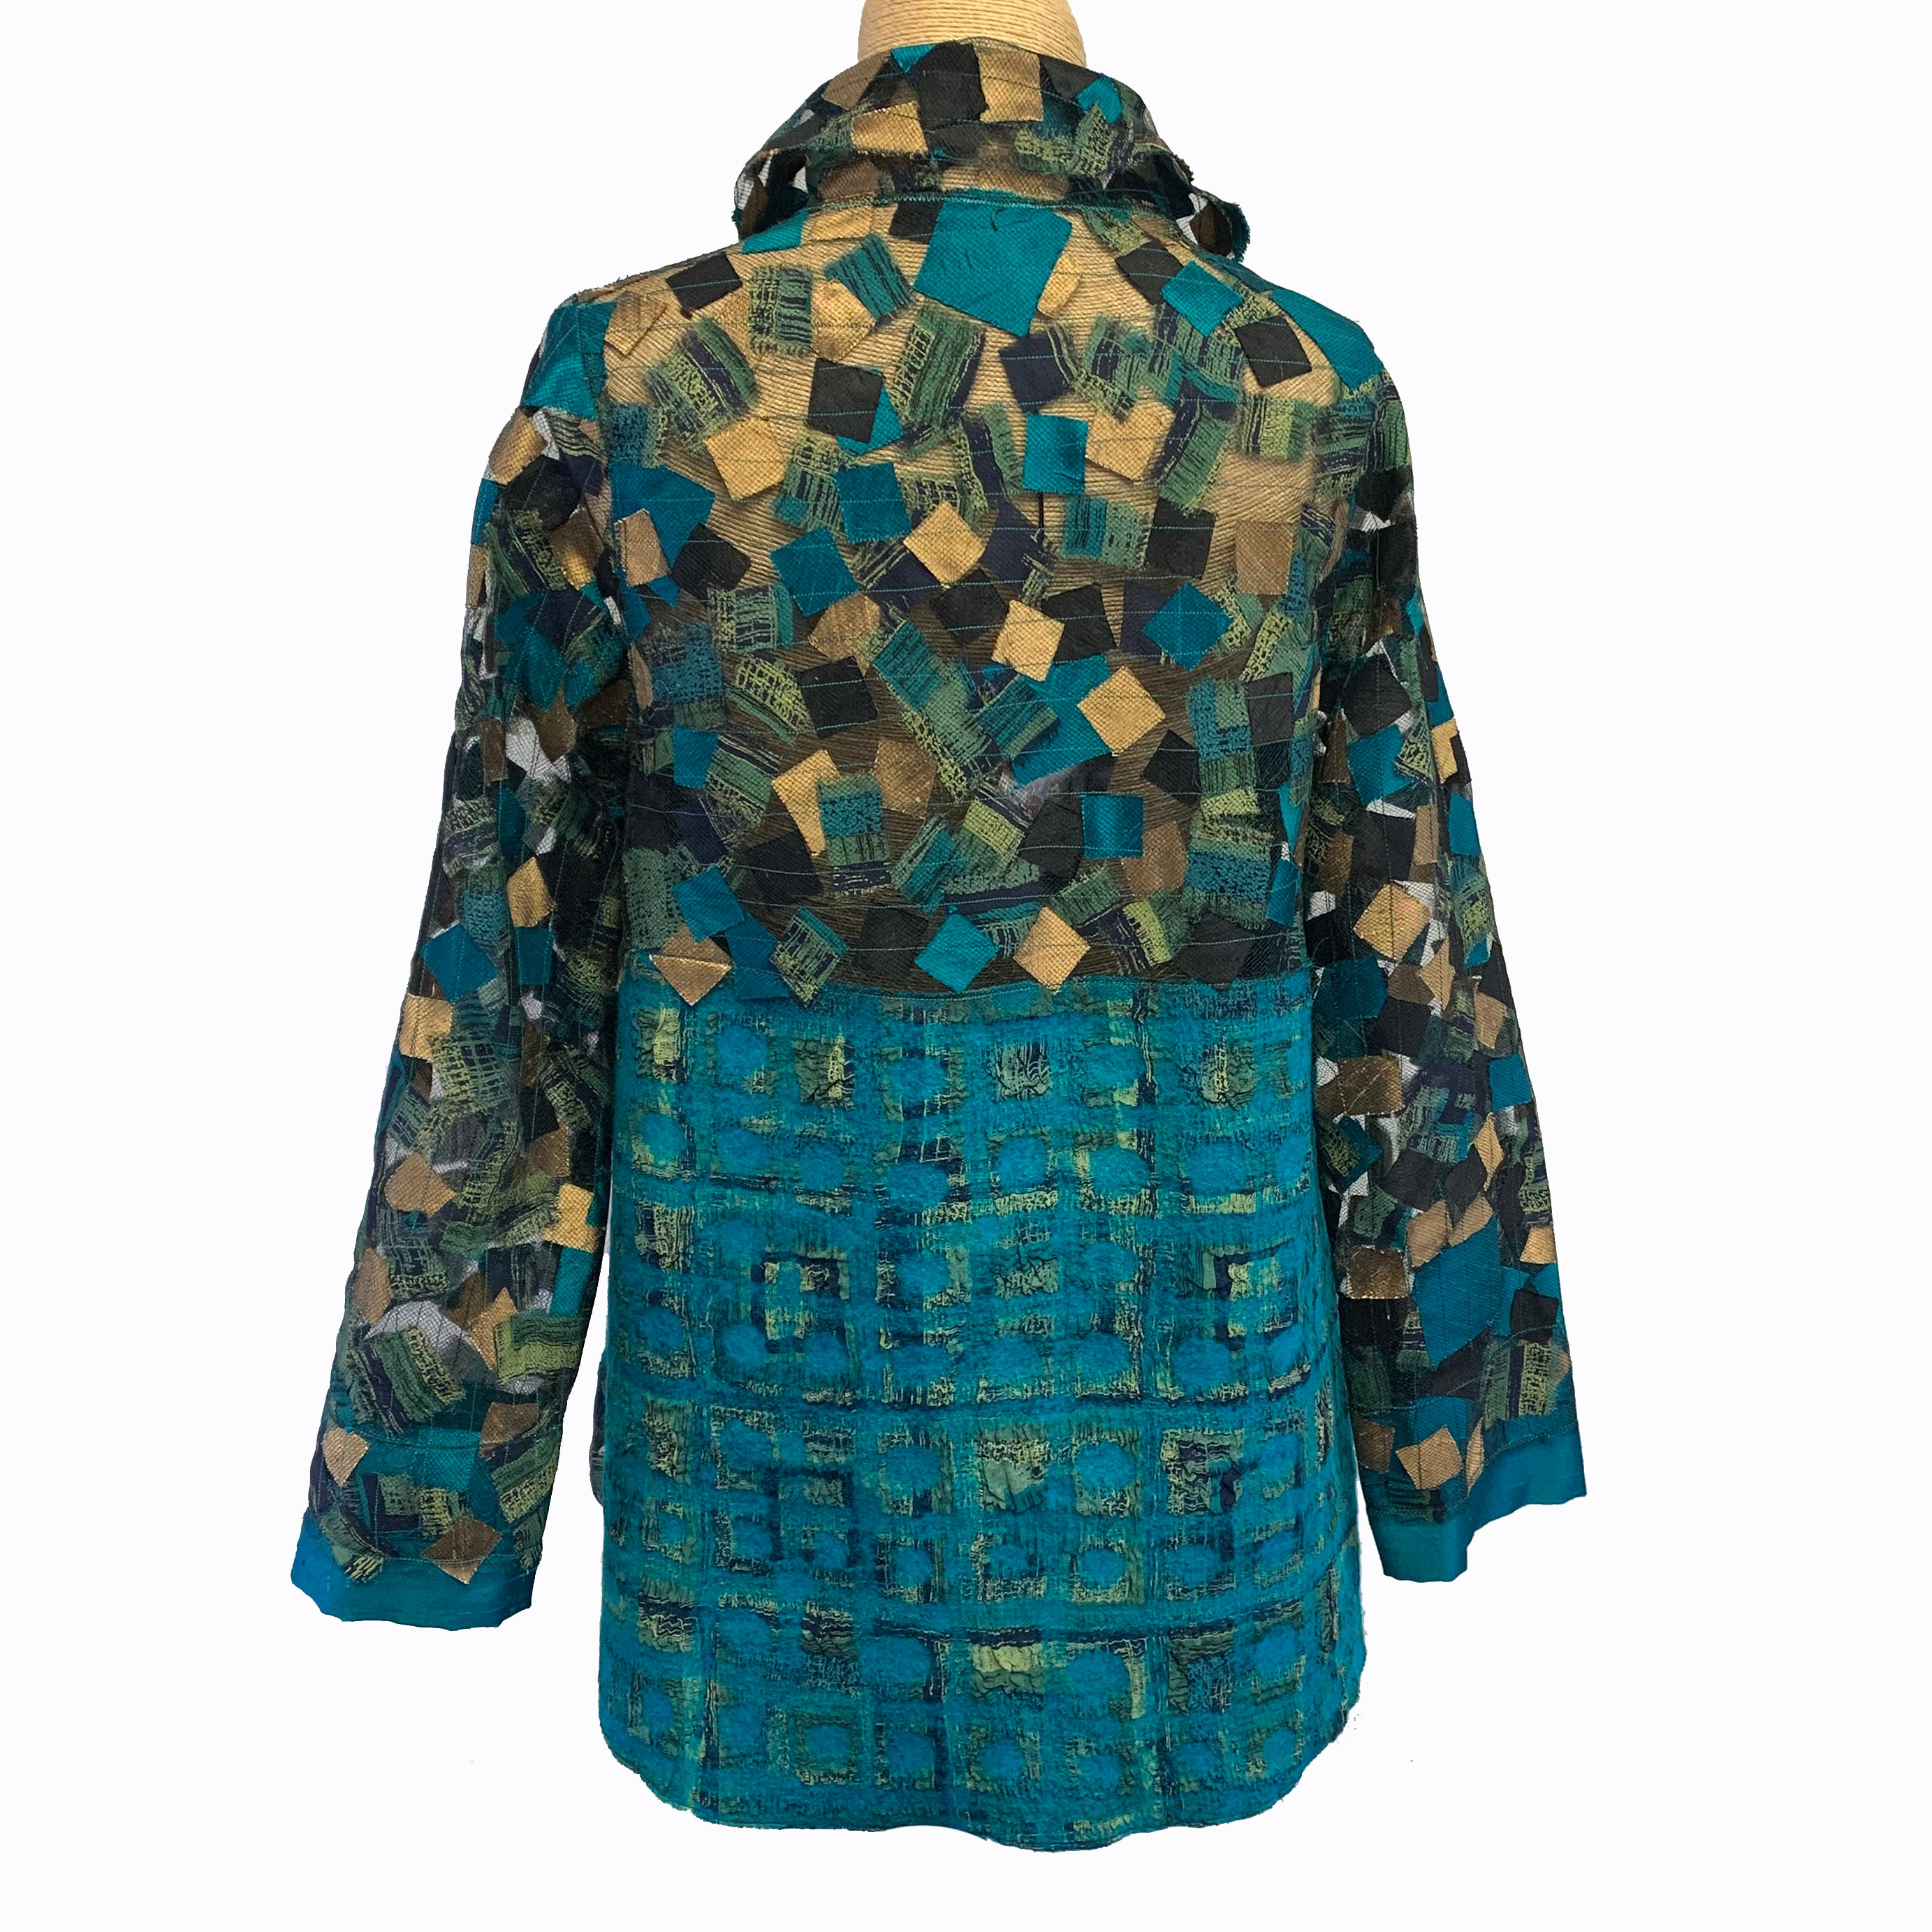 NEW PRICE! Maggy Pavlou Jacket, Turquoise/Gold, S